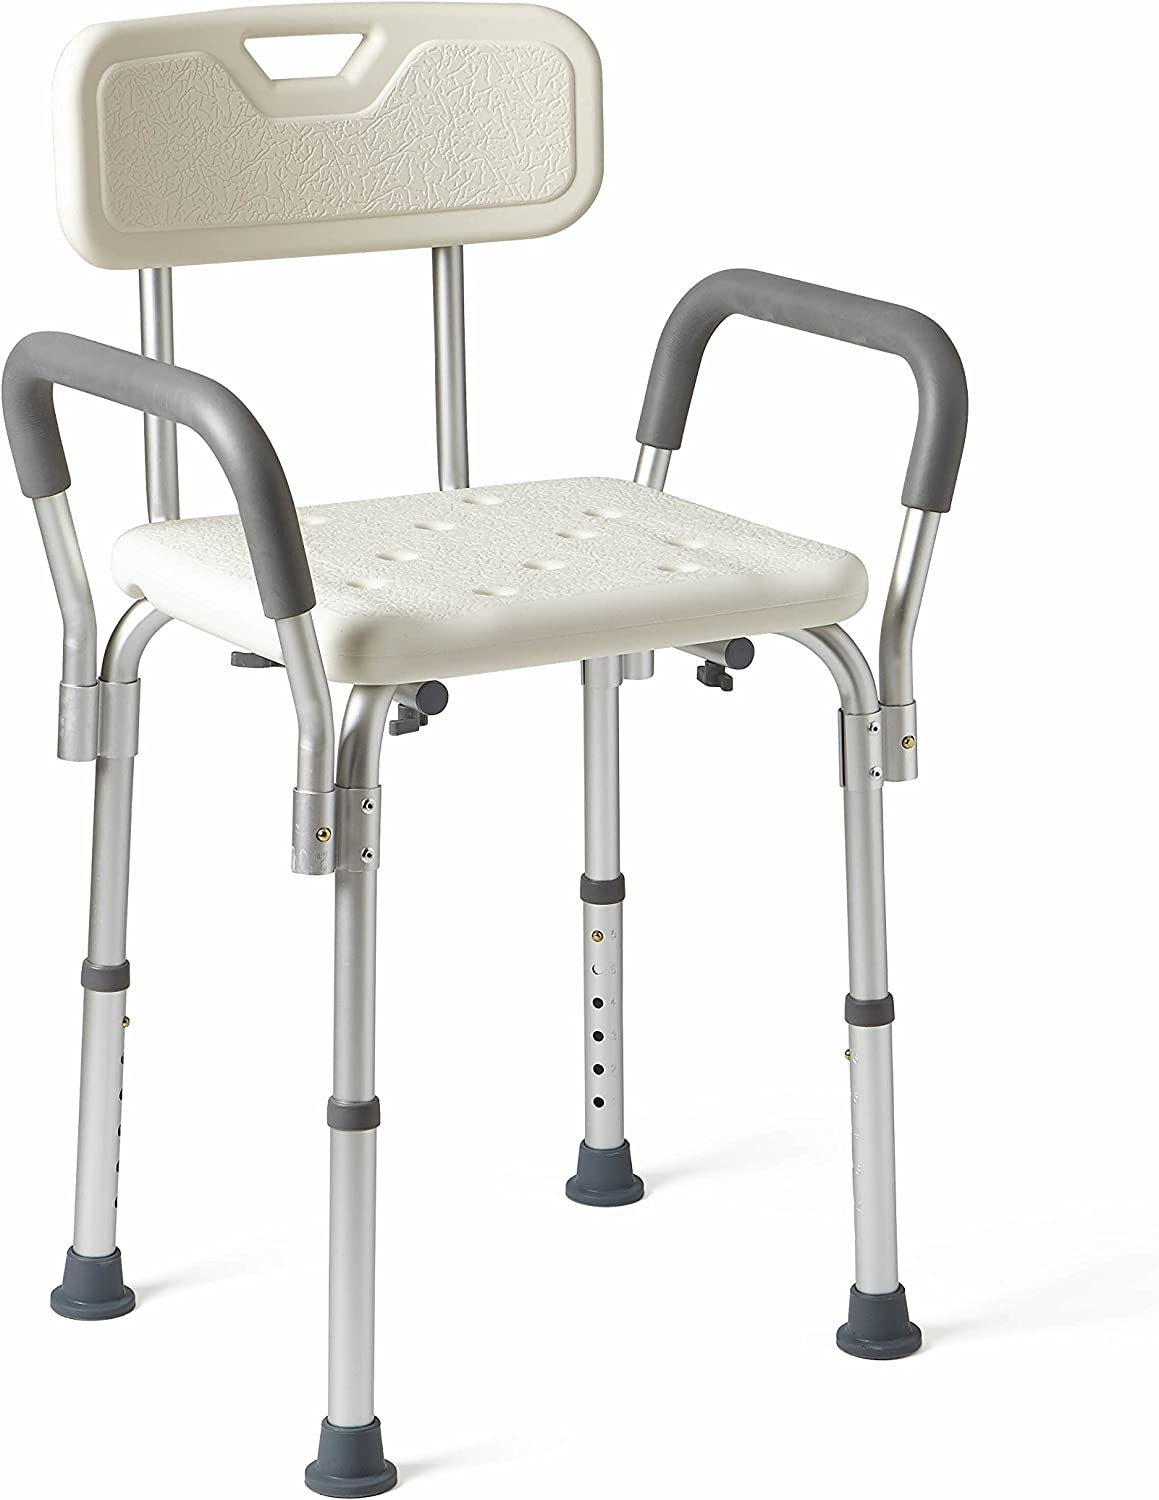 Medline Shower Chair Bath Seat